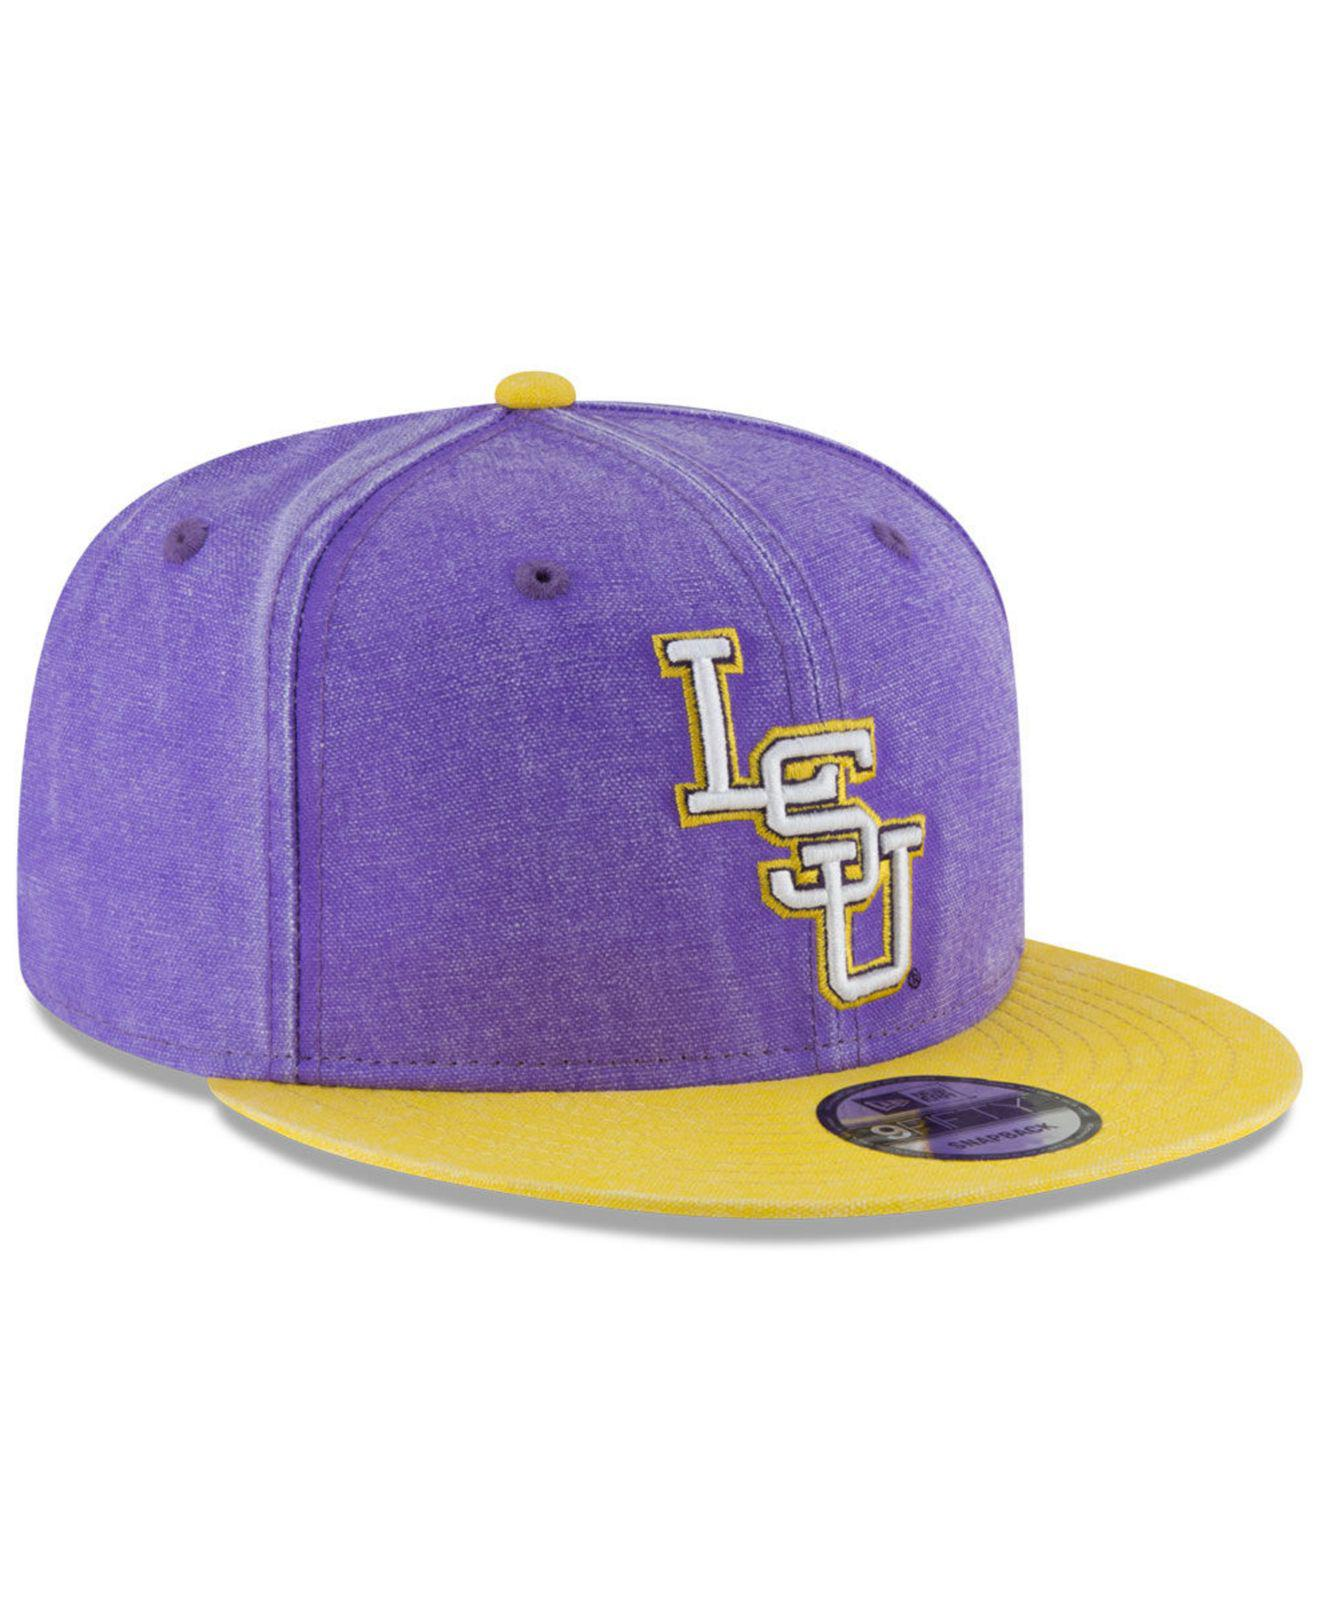 size 40 bd0f4 ace6e italy north carolina tar heels new era ncaa rugged canvas 9fifty snapback  cap fde96 6046f  ireland lyst ktz lsu tigers rugged canvas snapback cap in  purple ...